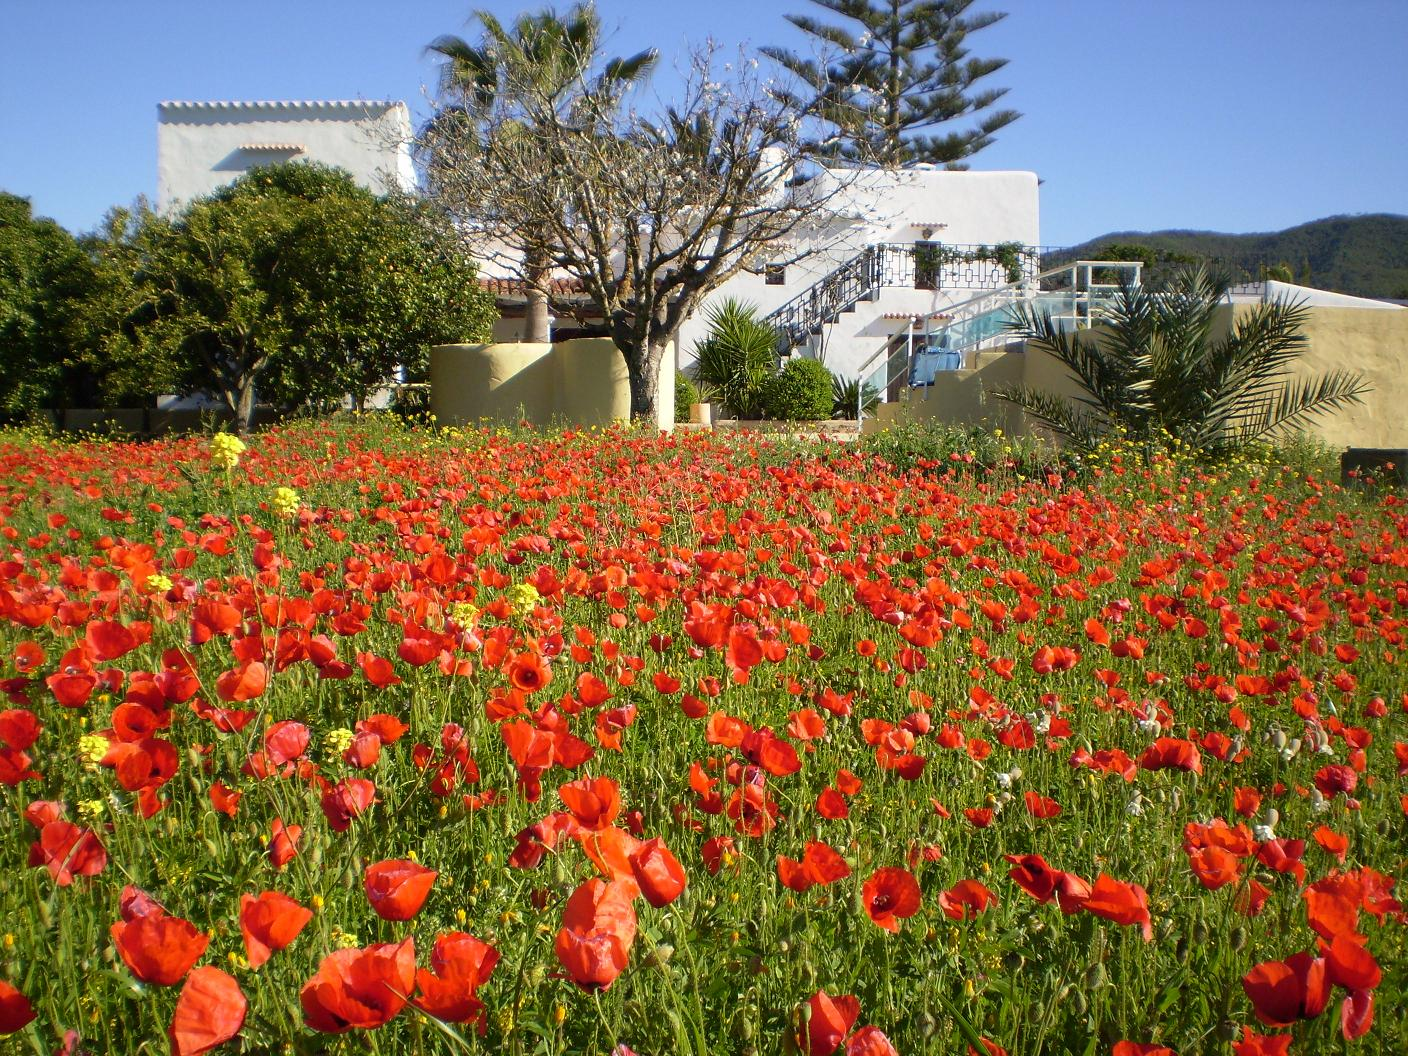 Garden with poppies